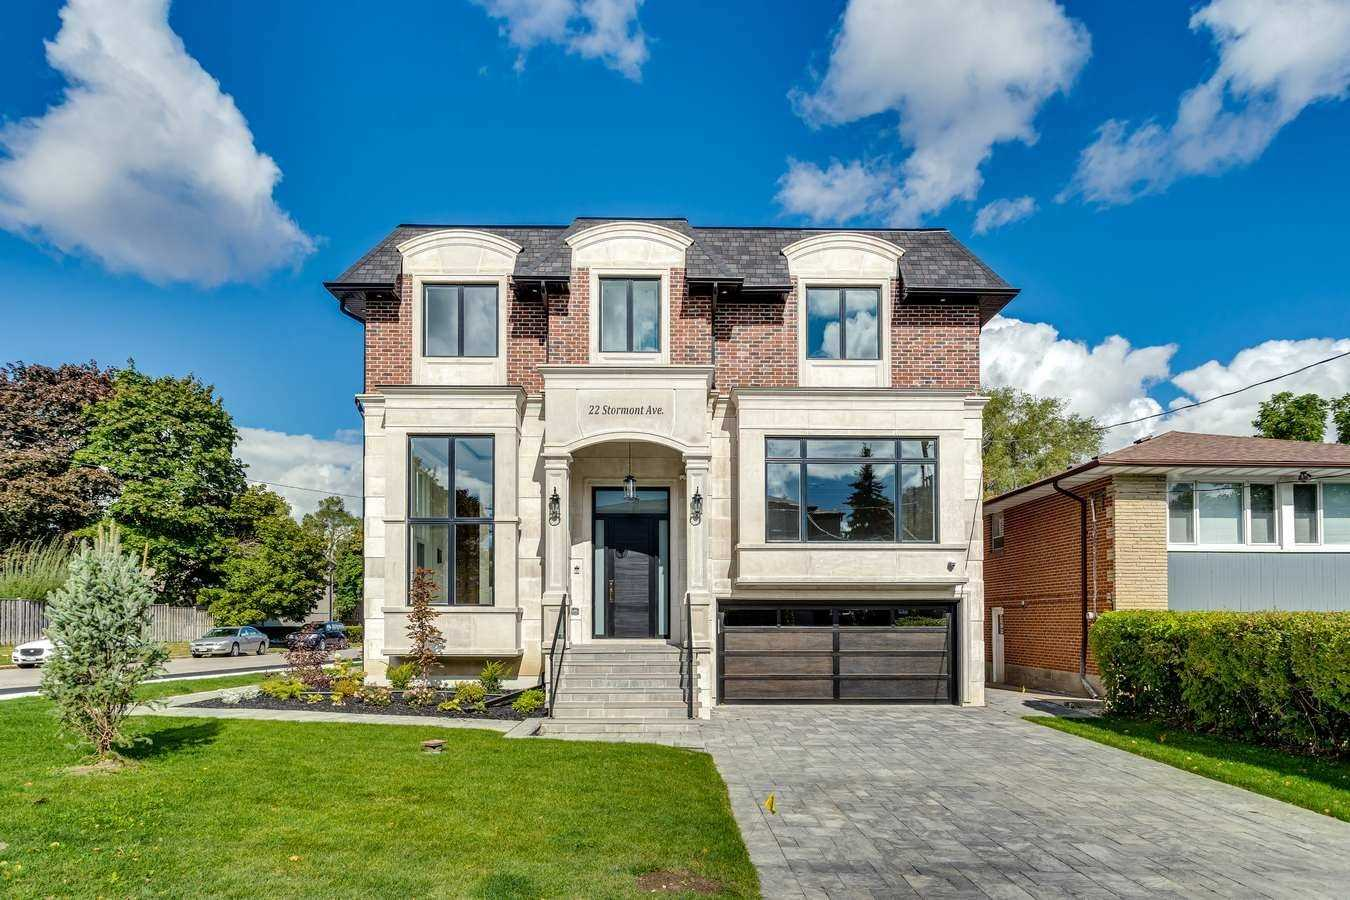 22 Stormont Ave, Toronto, Ontario M5N2B8, 5 Bedrooms Bedrooms, 11 Rooms Rooms,8 BathroomsBathrooms,Detached,For Sale,Stormont,C5003700